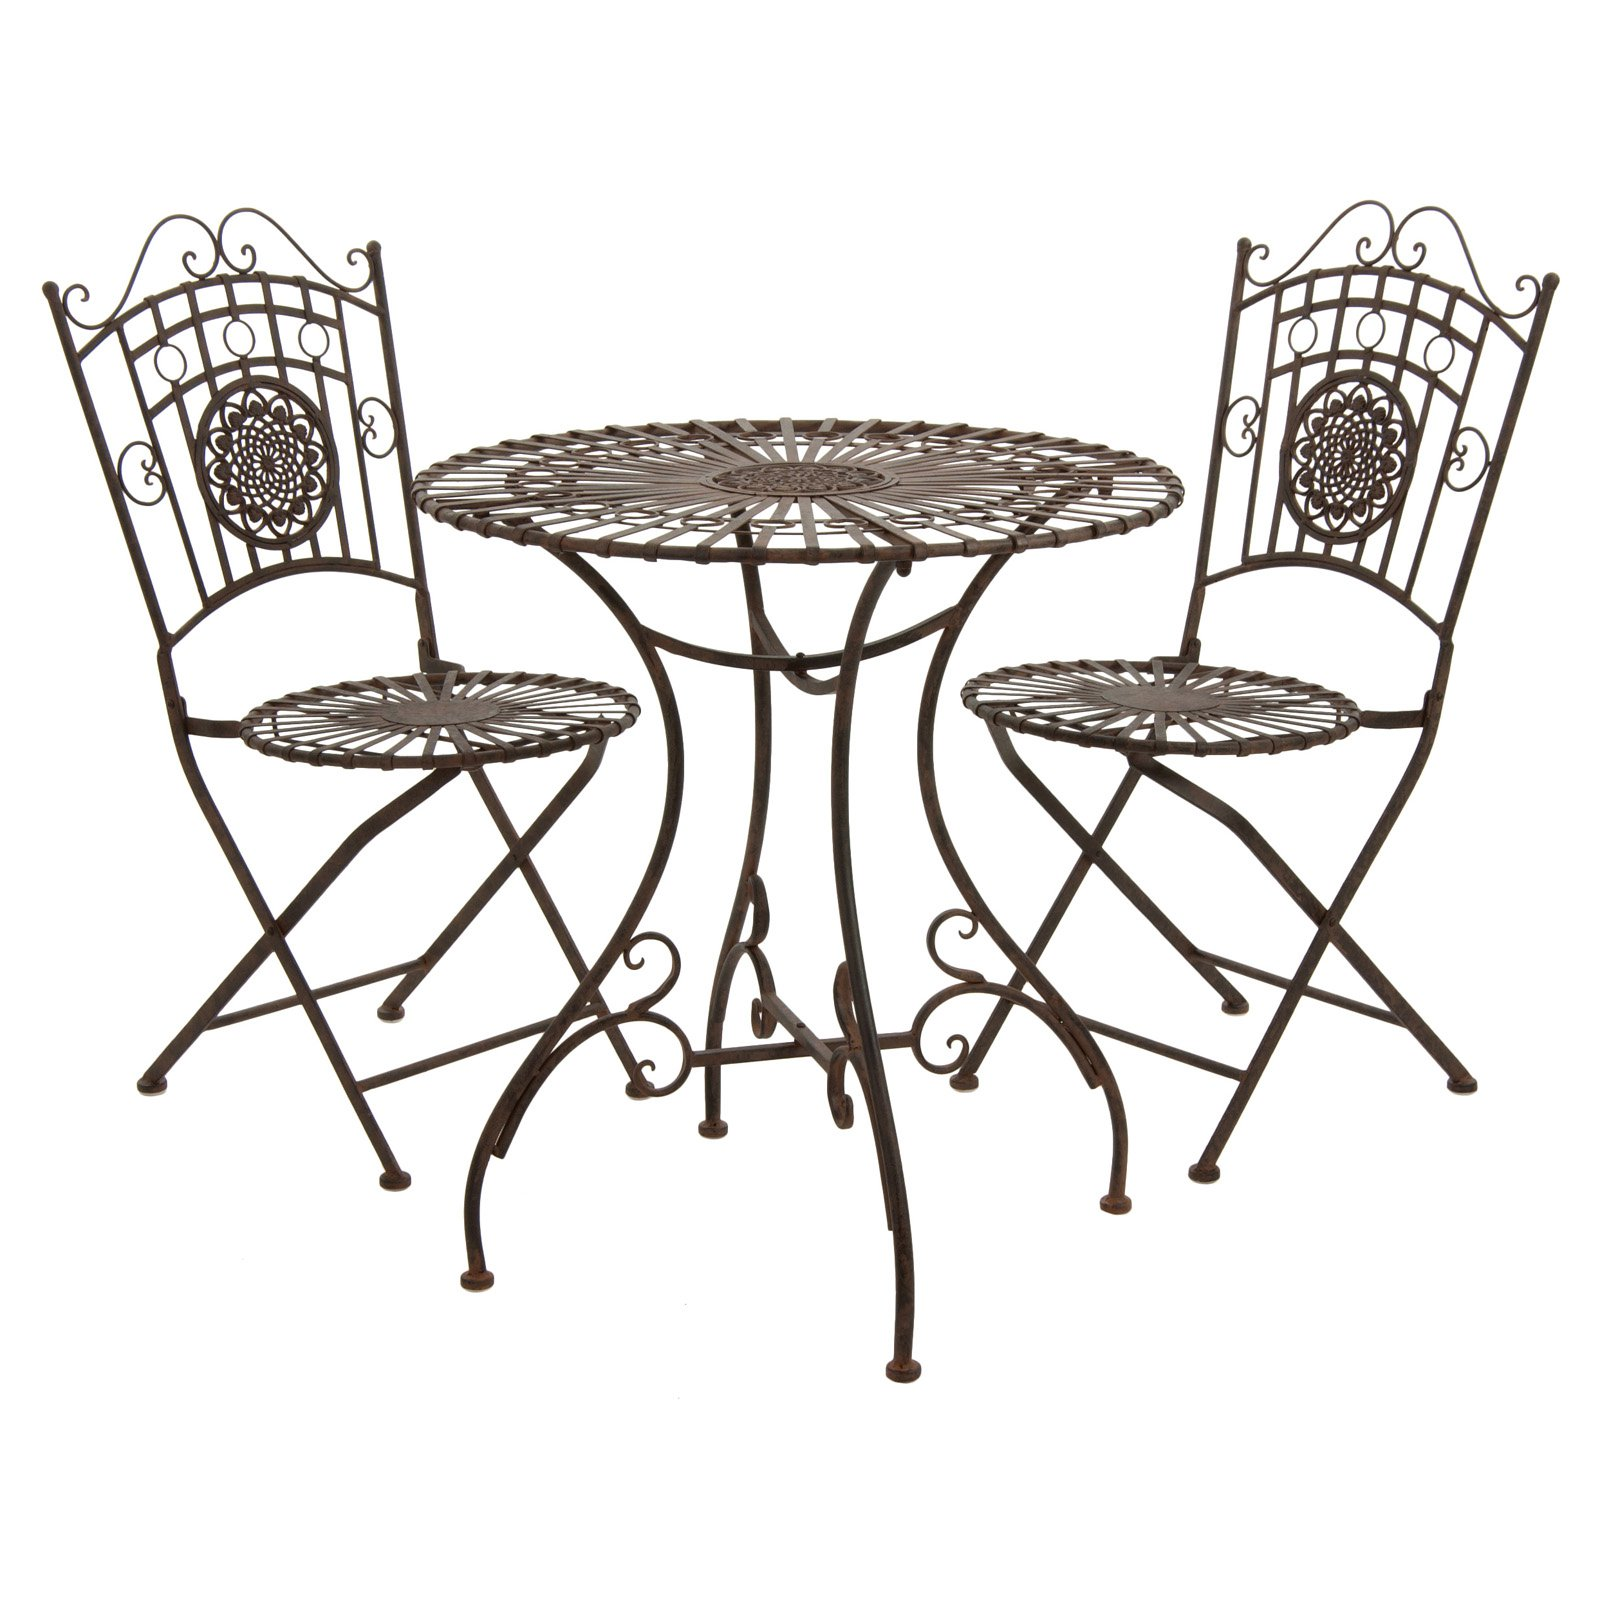 Oriental Furniture Rustic Wrought Iron Patio Bistro Set